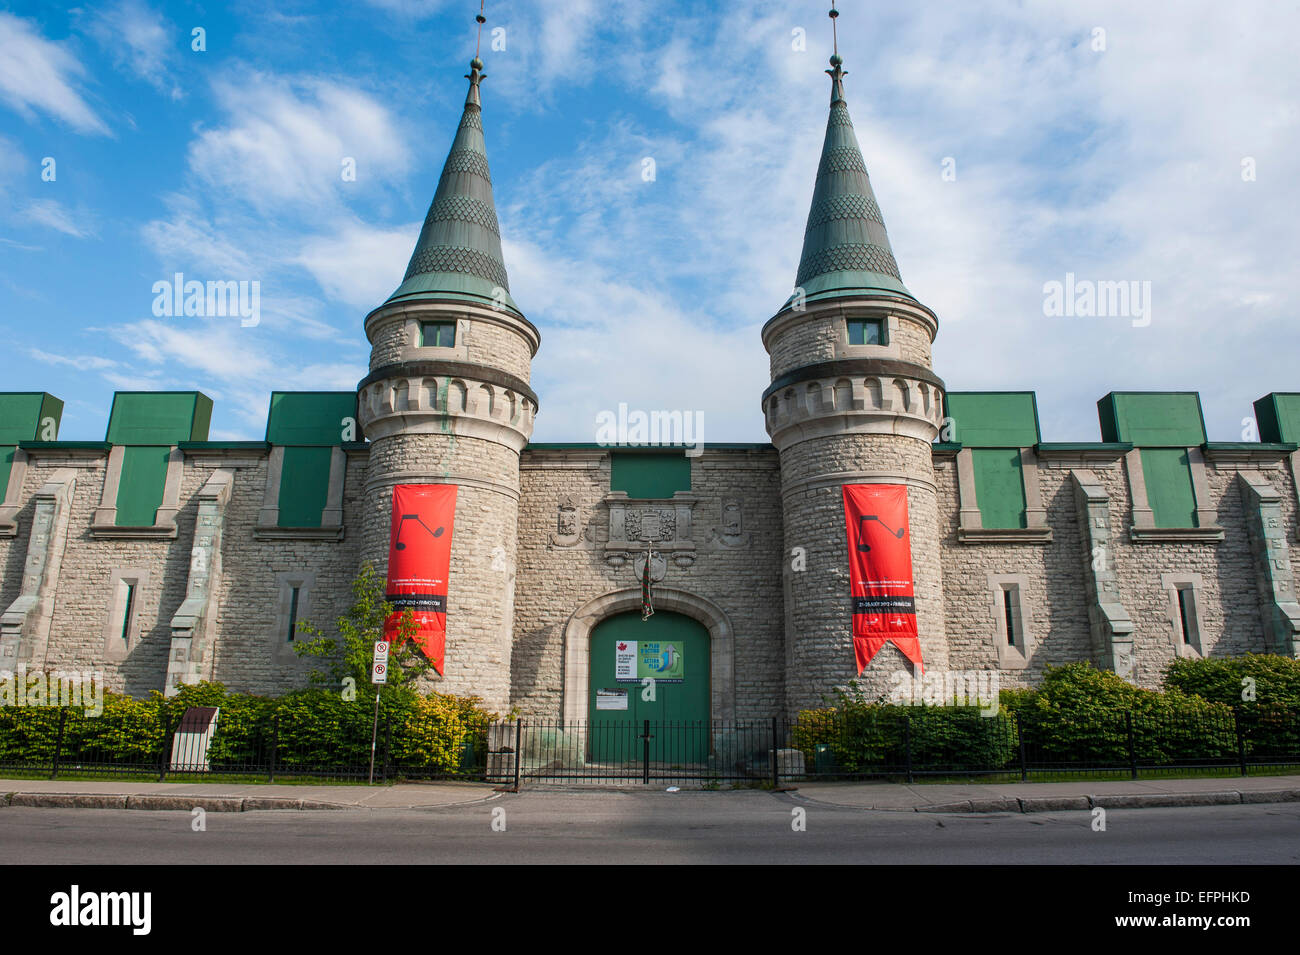 The towers of the Quebec City Armoury in Quebec City, Quebec, Canada, North America - Stock Image